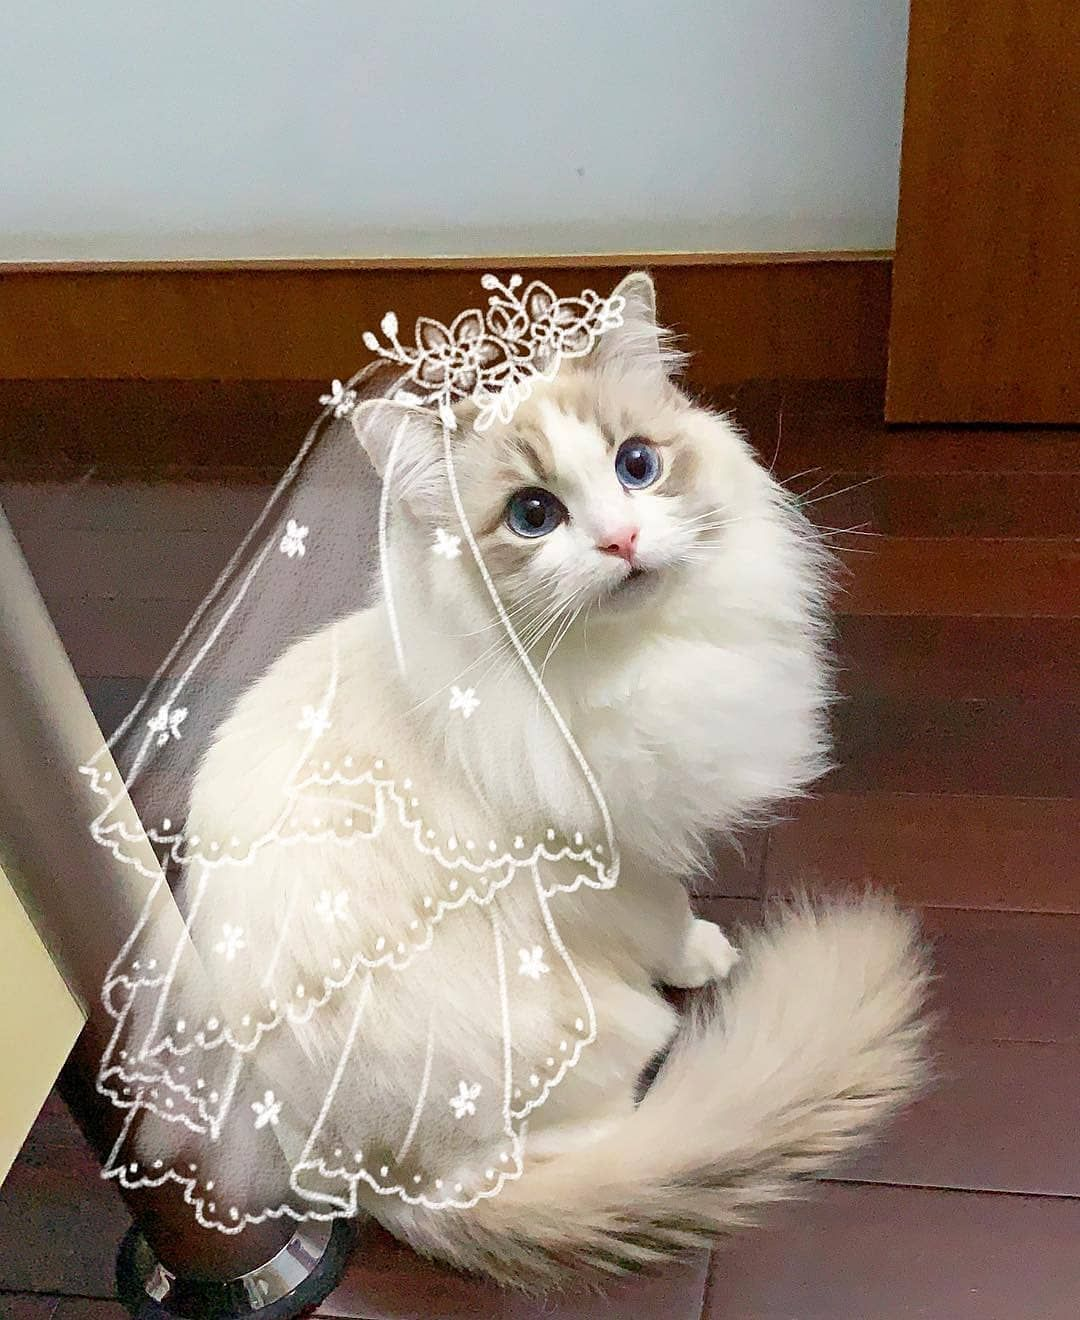 The Cutest Animal Clips Of Ig On Instagram Big Day Kittens Of World And Follow Us To Be Featured From Bellamy 2017 Not Gorgeous Cats Cute Cats Cats